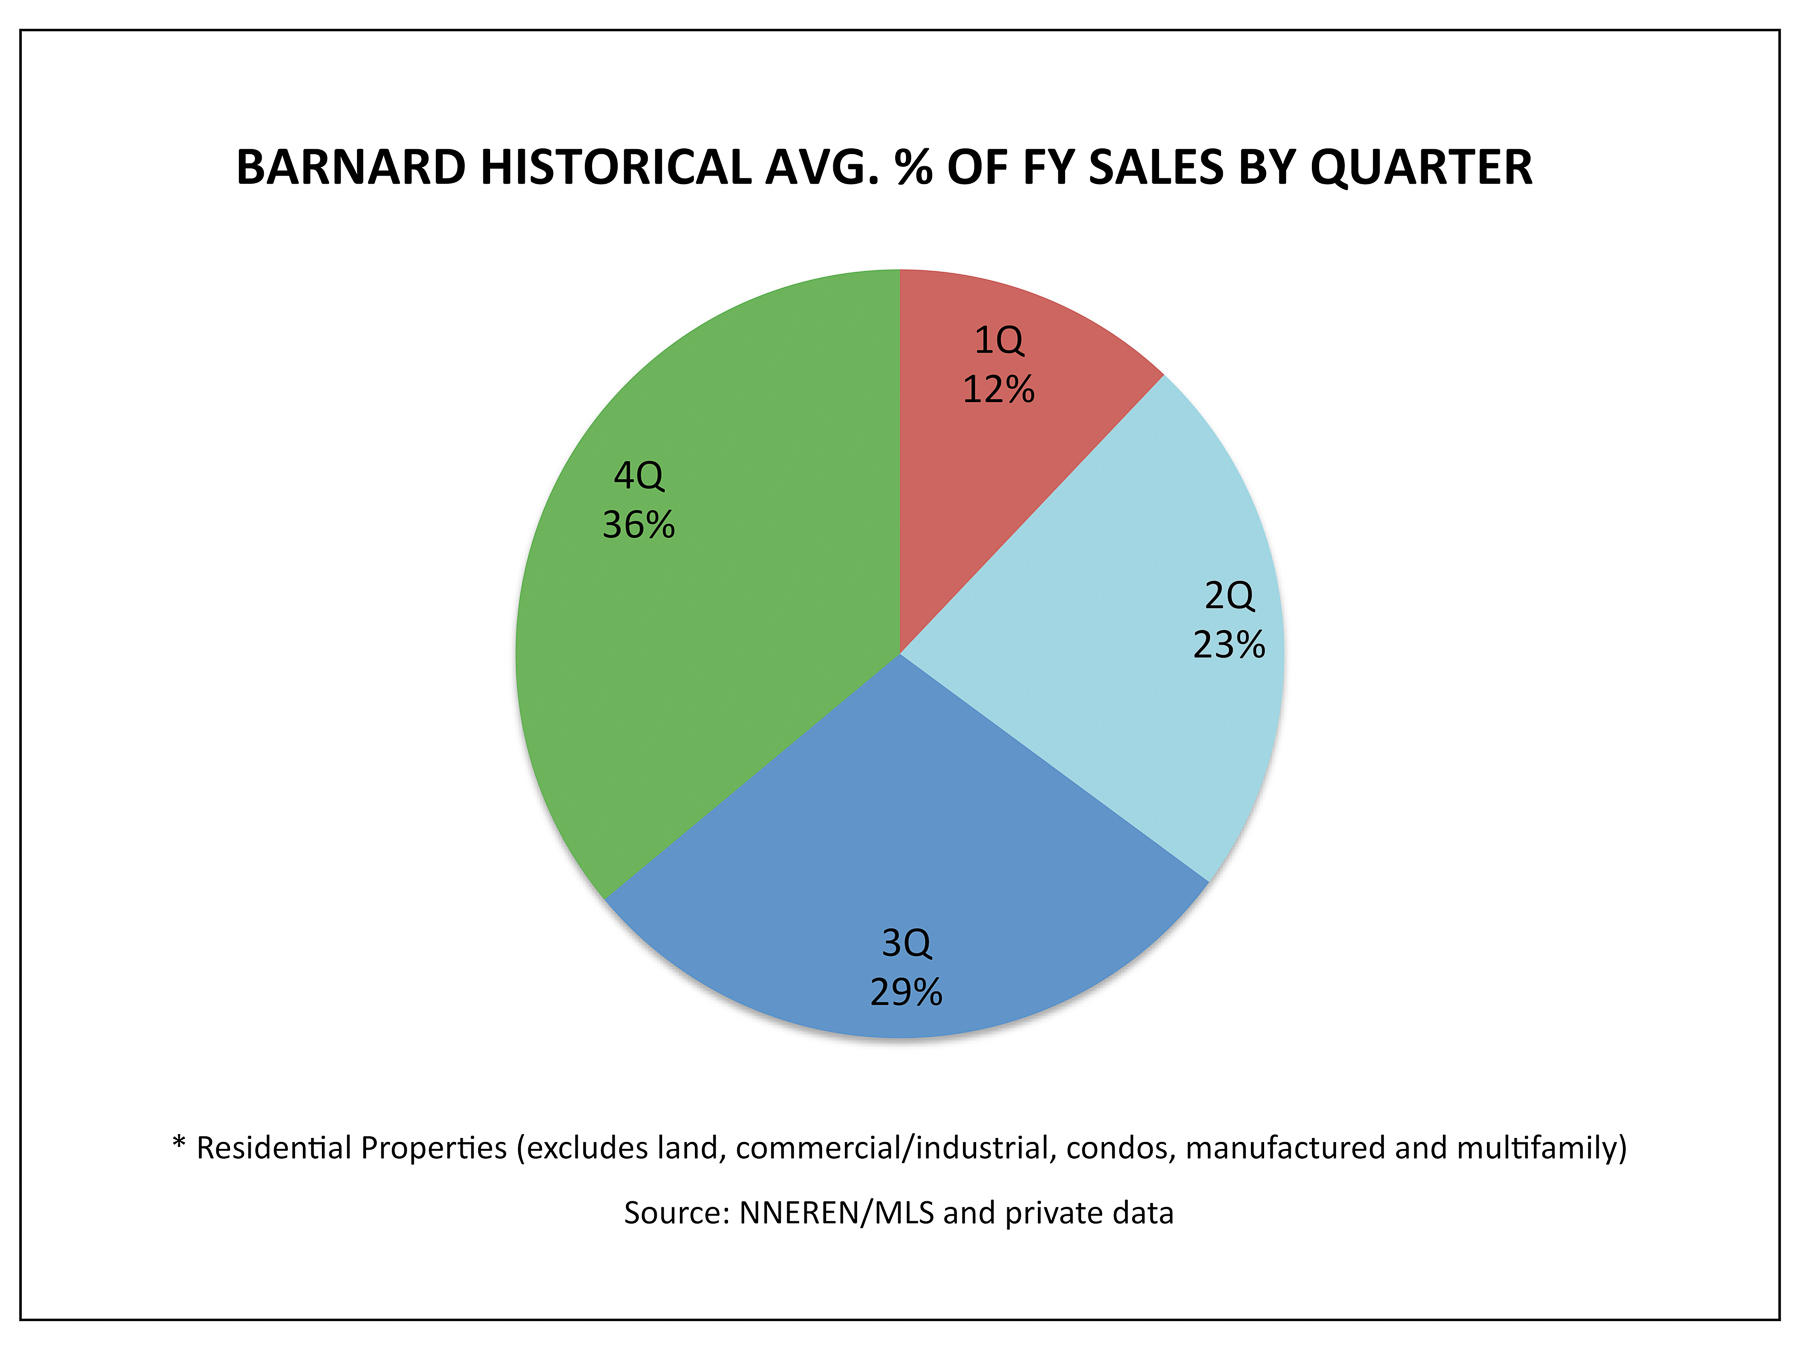 Barnard VT Real Estate - 1Q Historical Avg % Homes Sold by Quarter